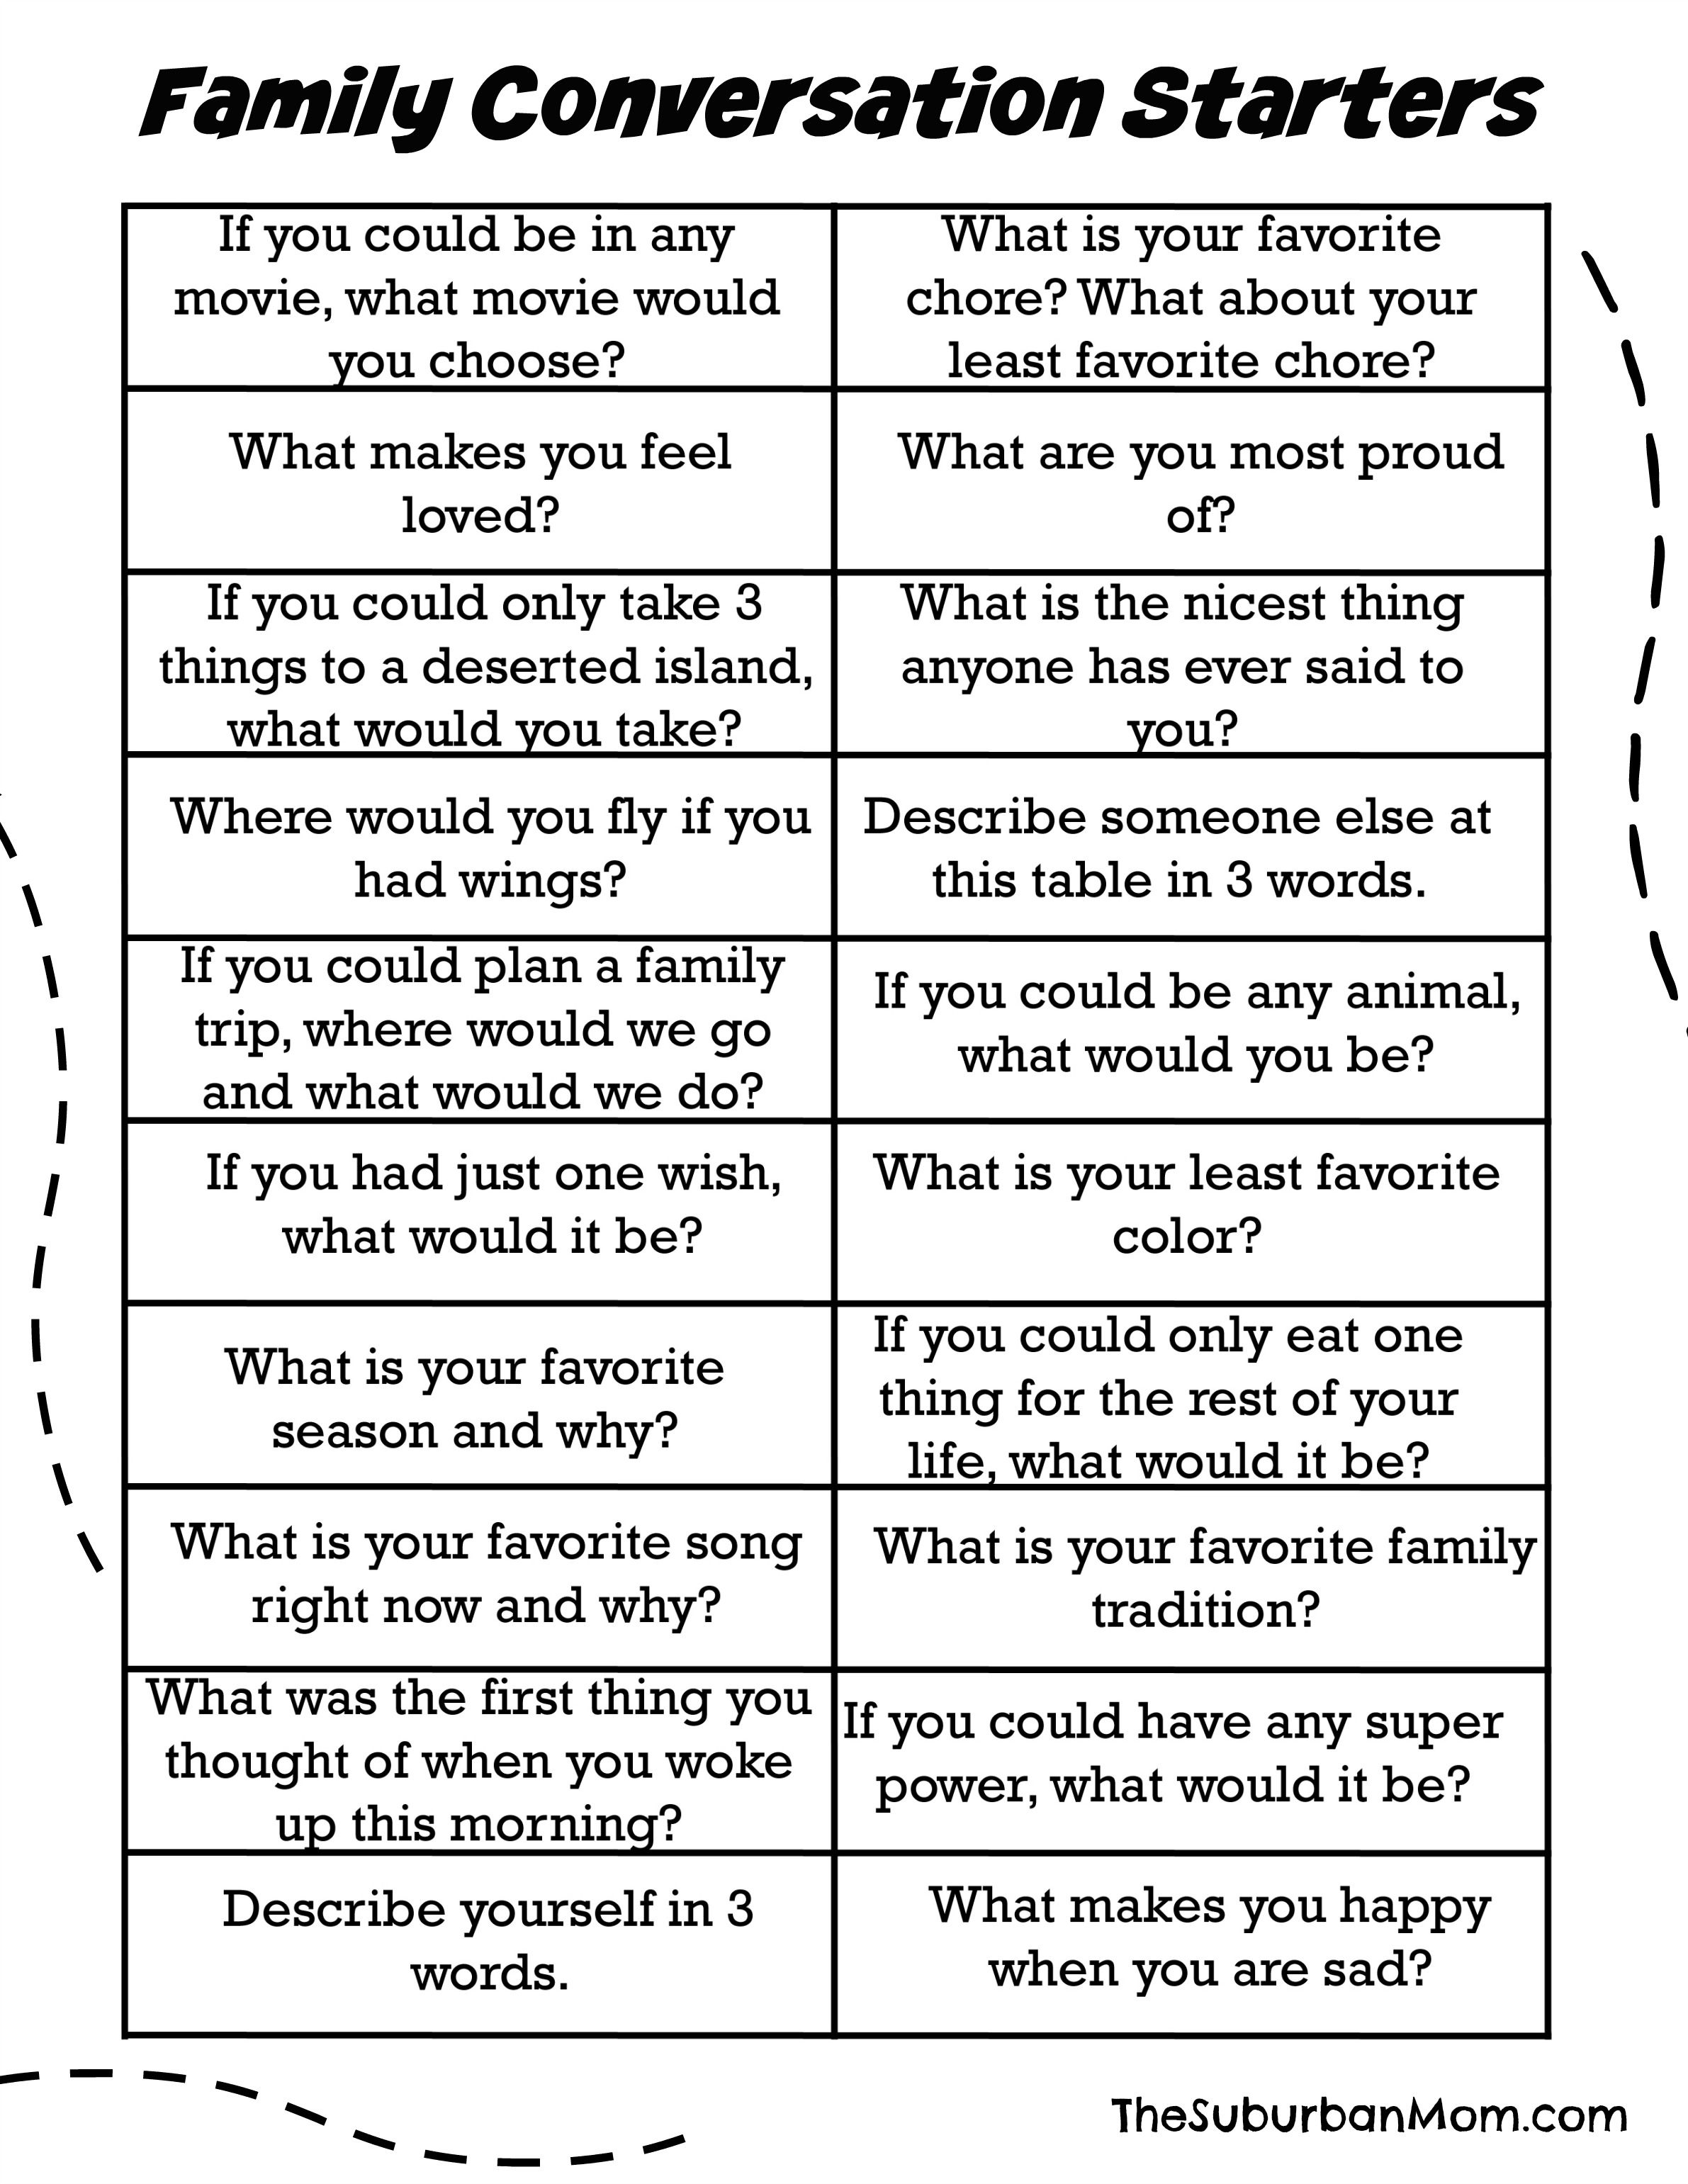 60 Family Conversation Starters (Free Printable) | Family ...